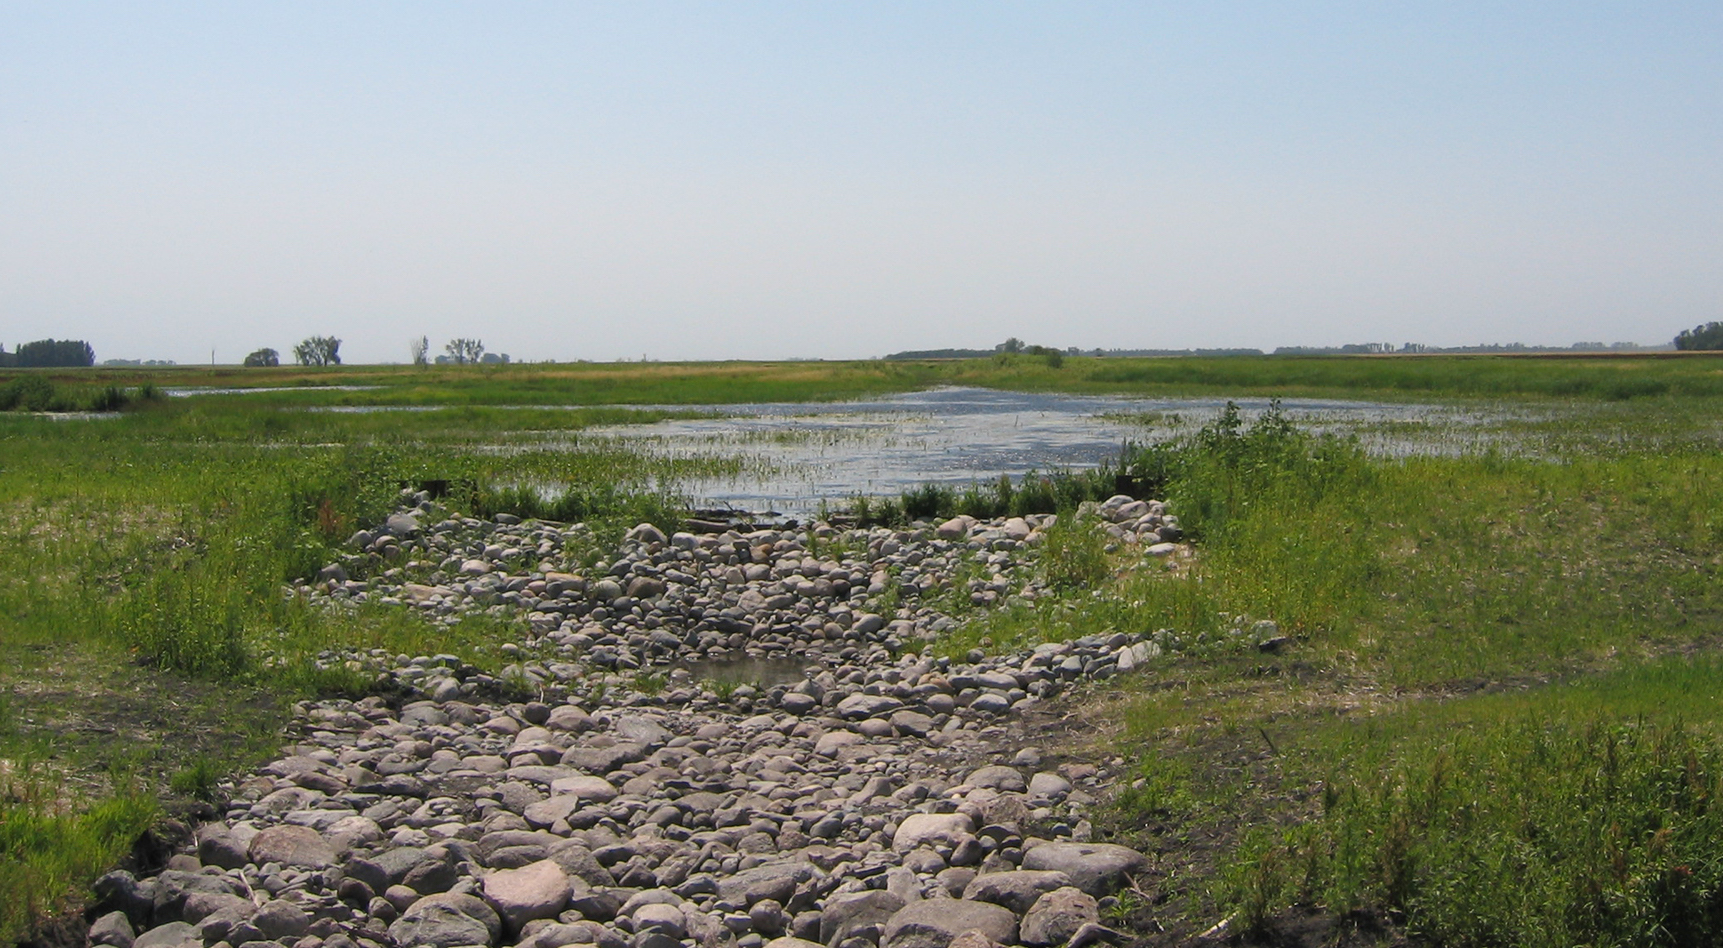 Wetland recreation to hold back water on the landscape before reaching rivers.